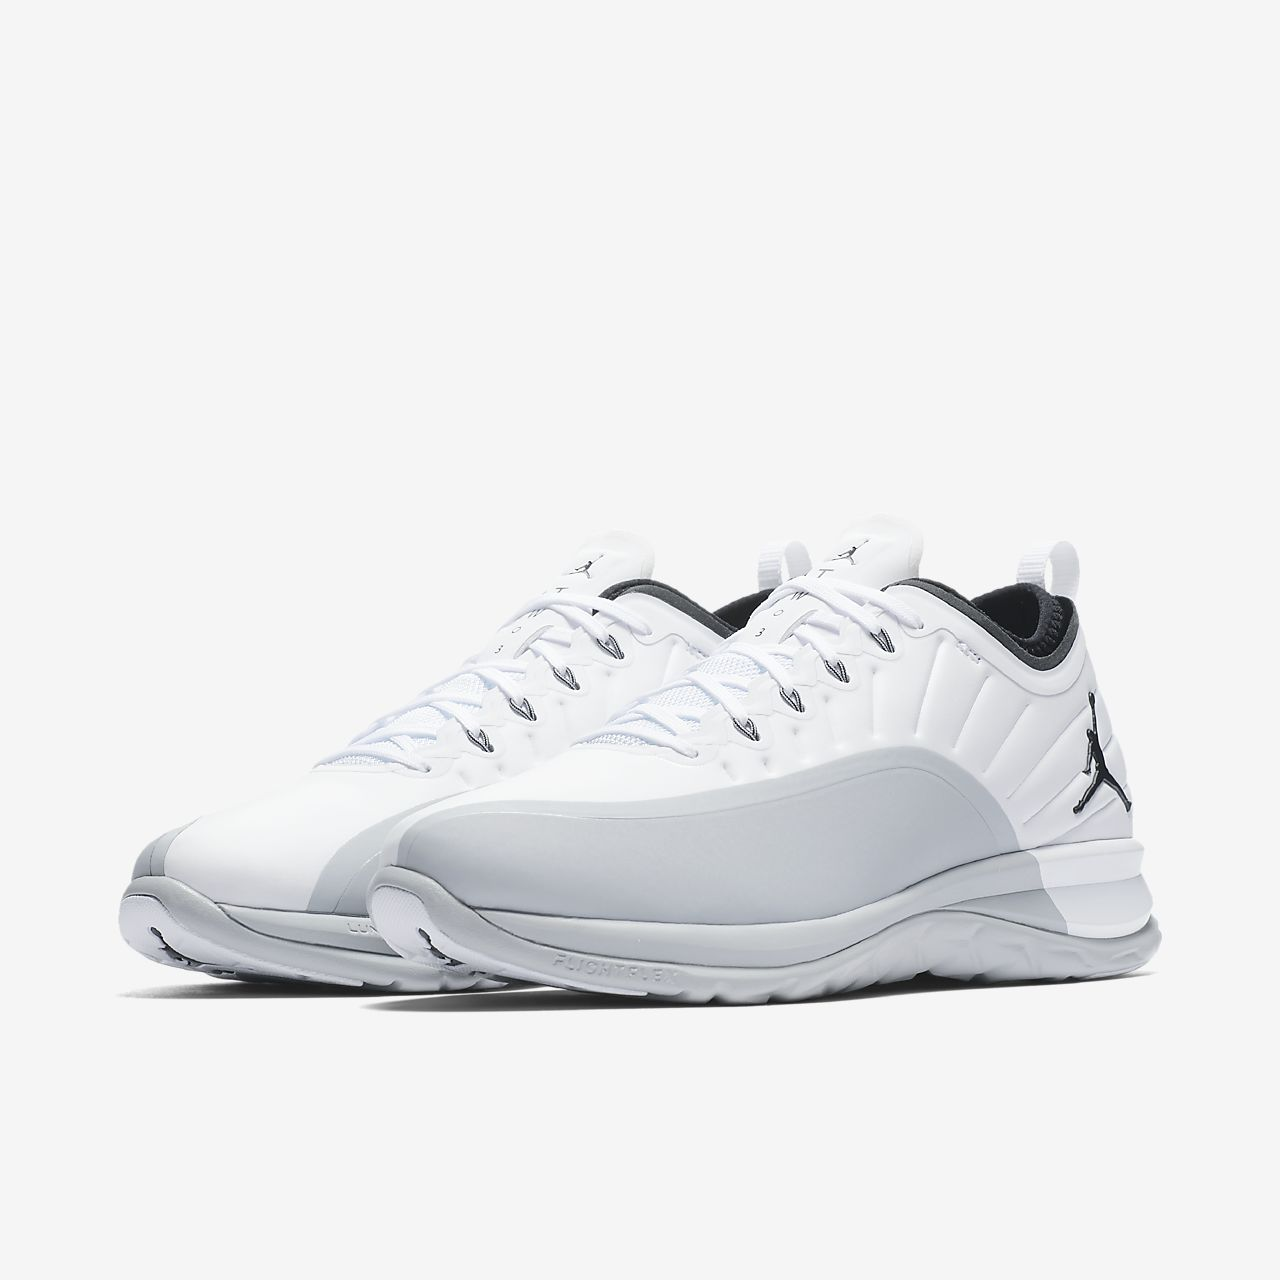 nike mens jordan shoes